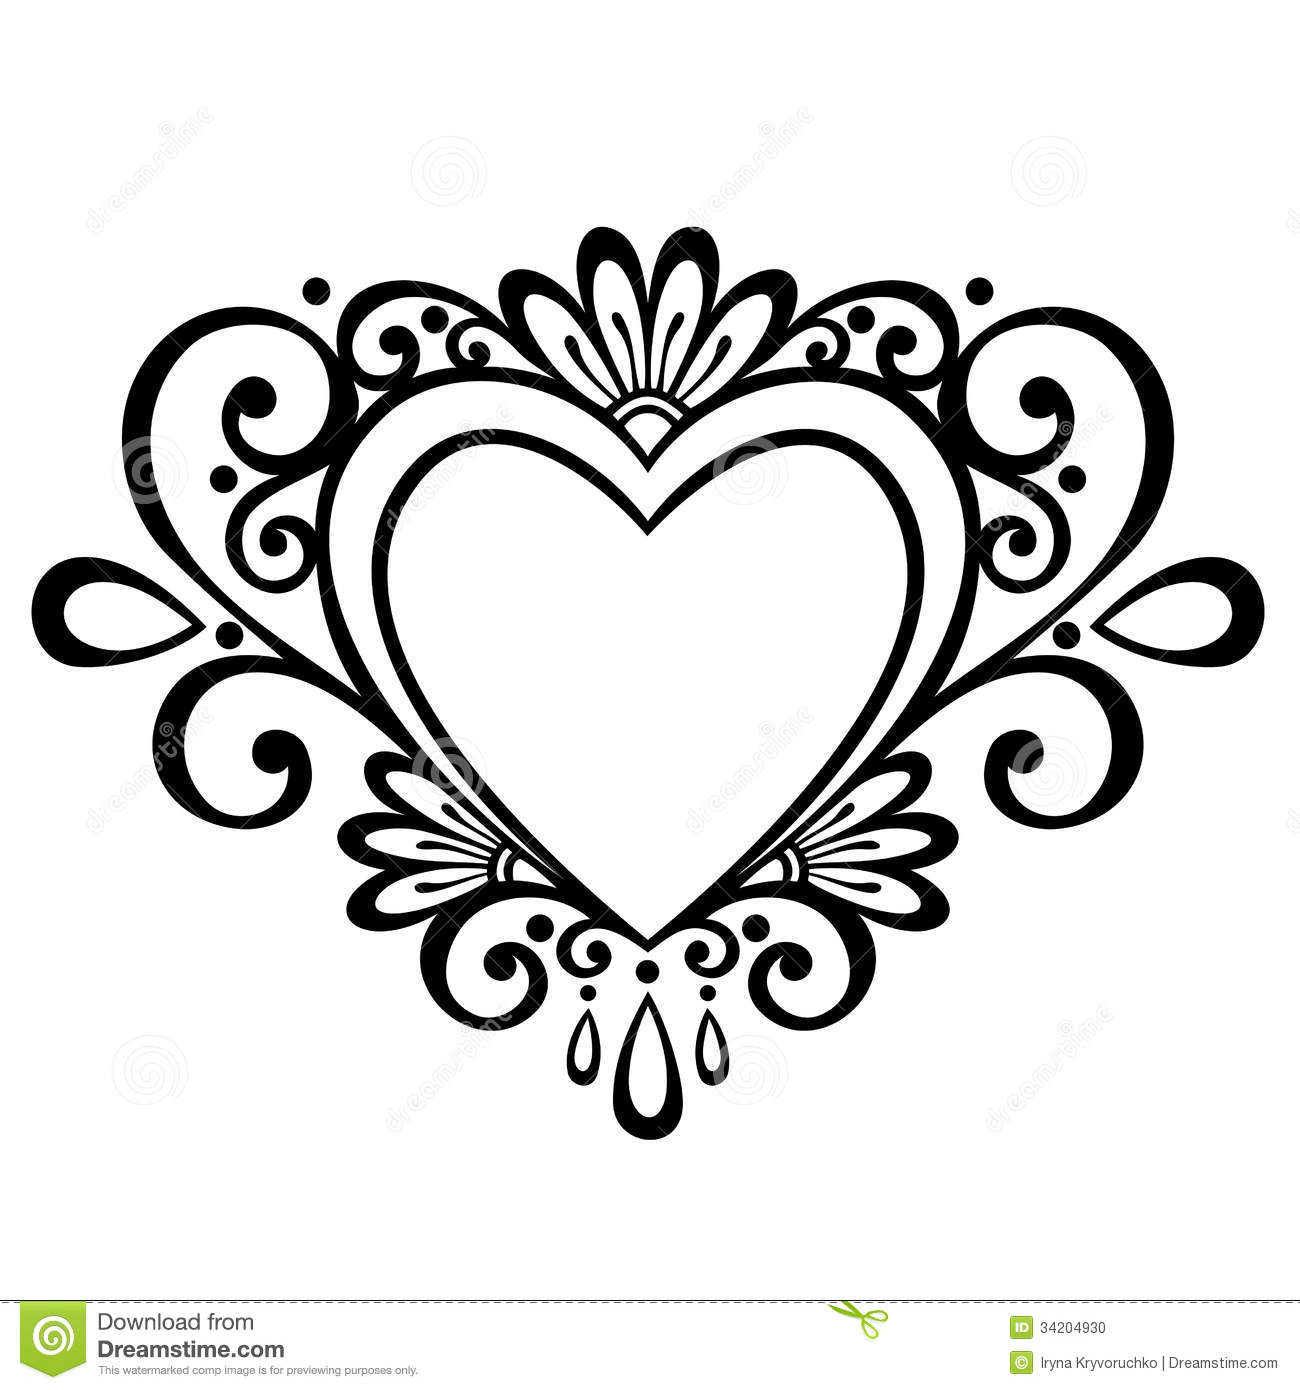 Abstract Heart Design Clip Art